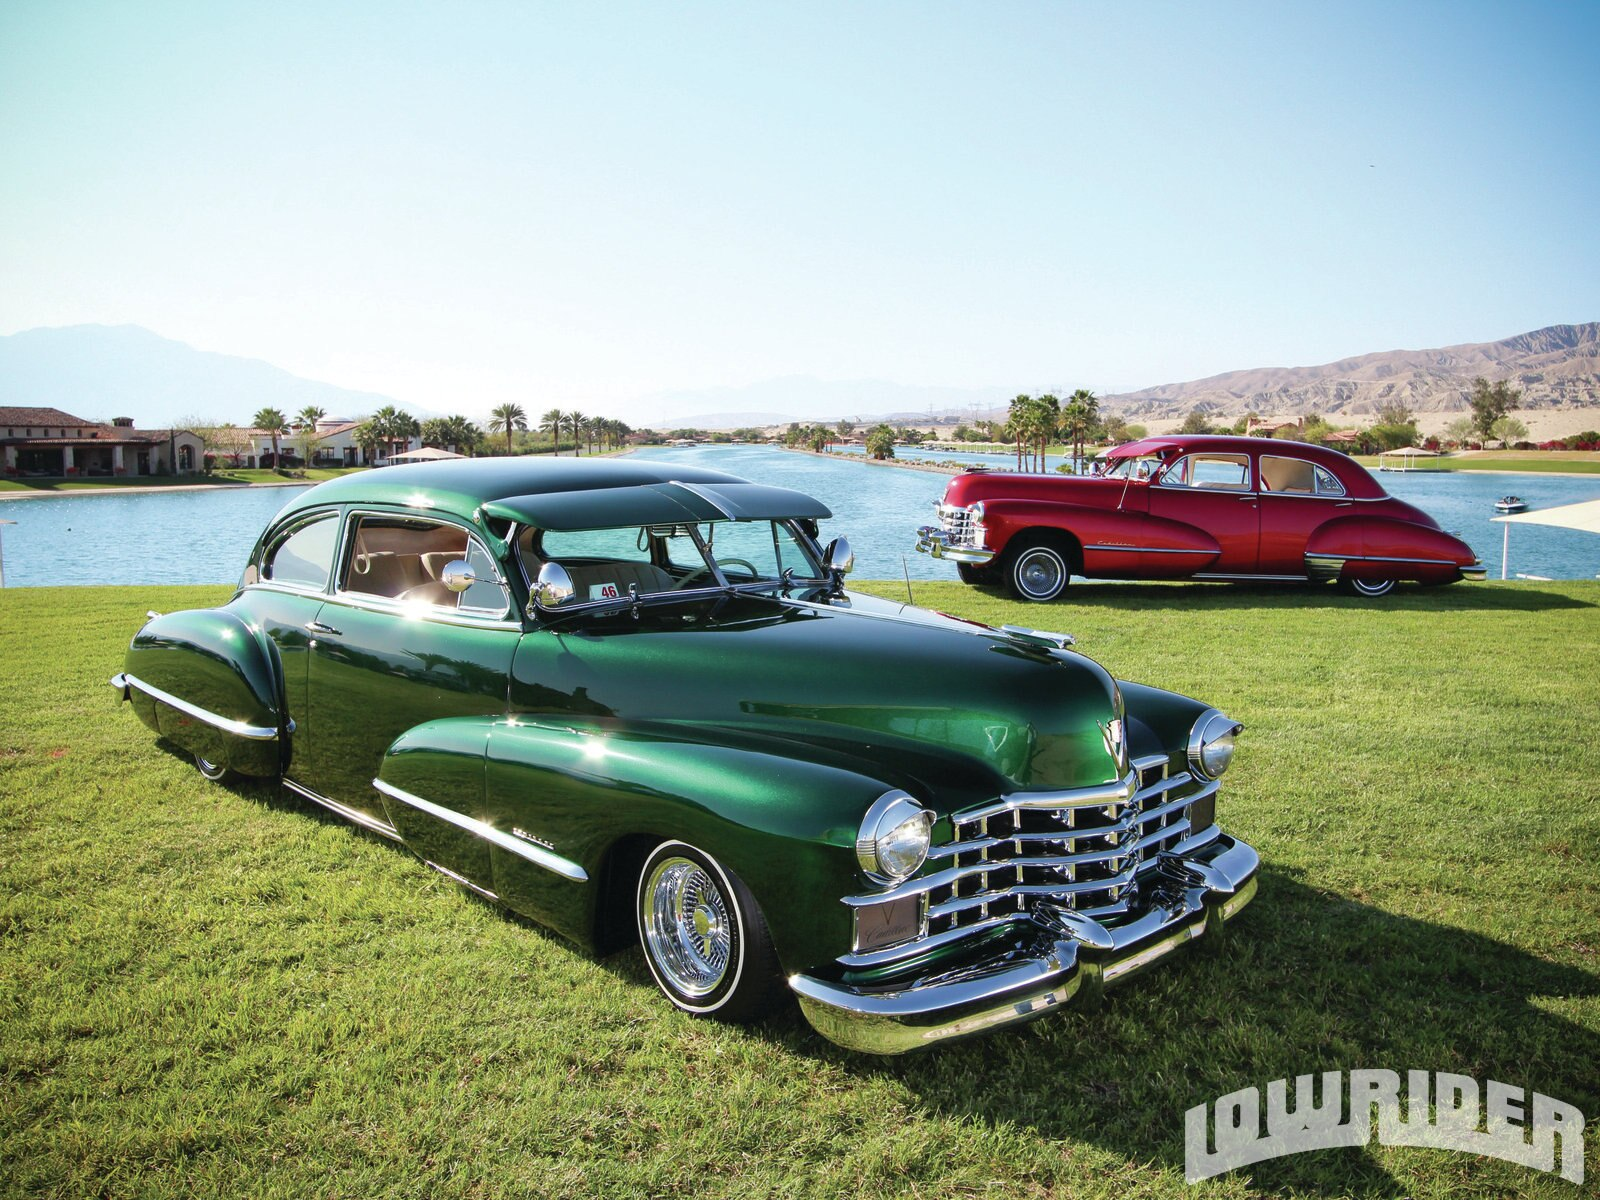 1946-cadillac-club-coupe-62-series-and-1947-cadillac-sedan-parked-cadillacs2